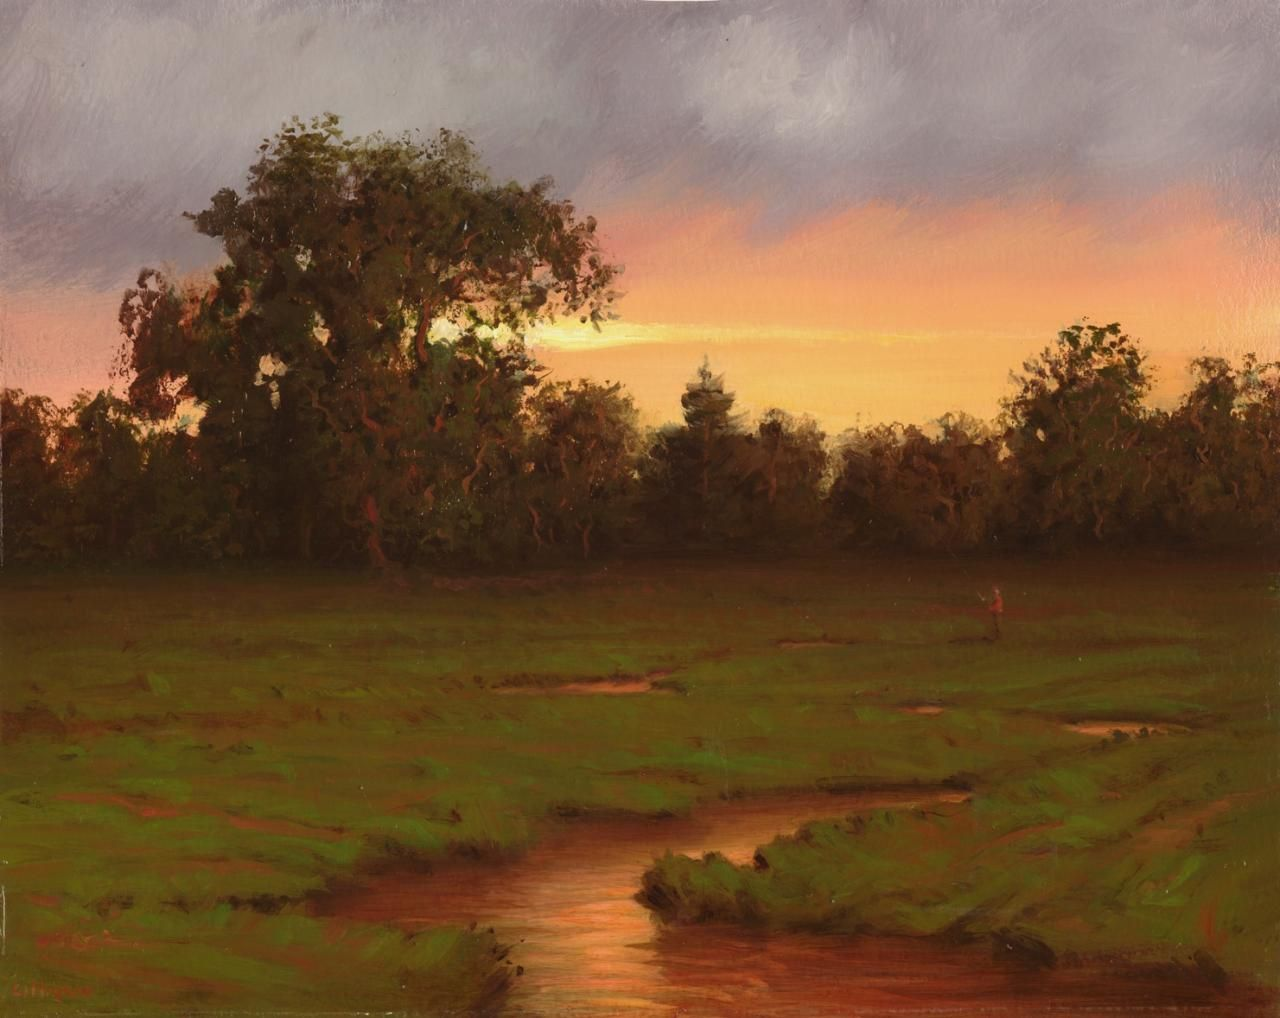 Copper Meadow is an original oil painting by Richard Lithgow of water running through a grassy meadow and a man casting a fishing line into the creek in front of New York forests and under a purple and pink sky.